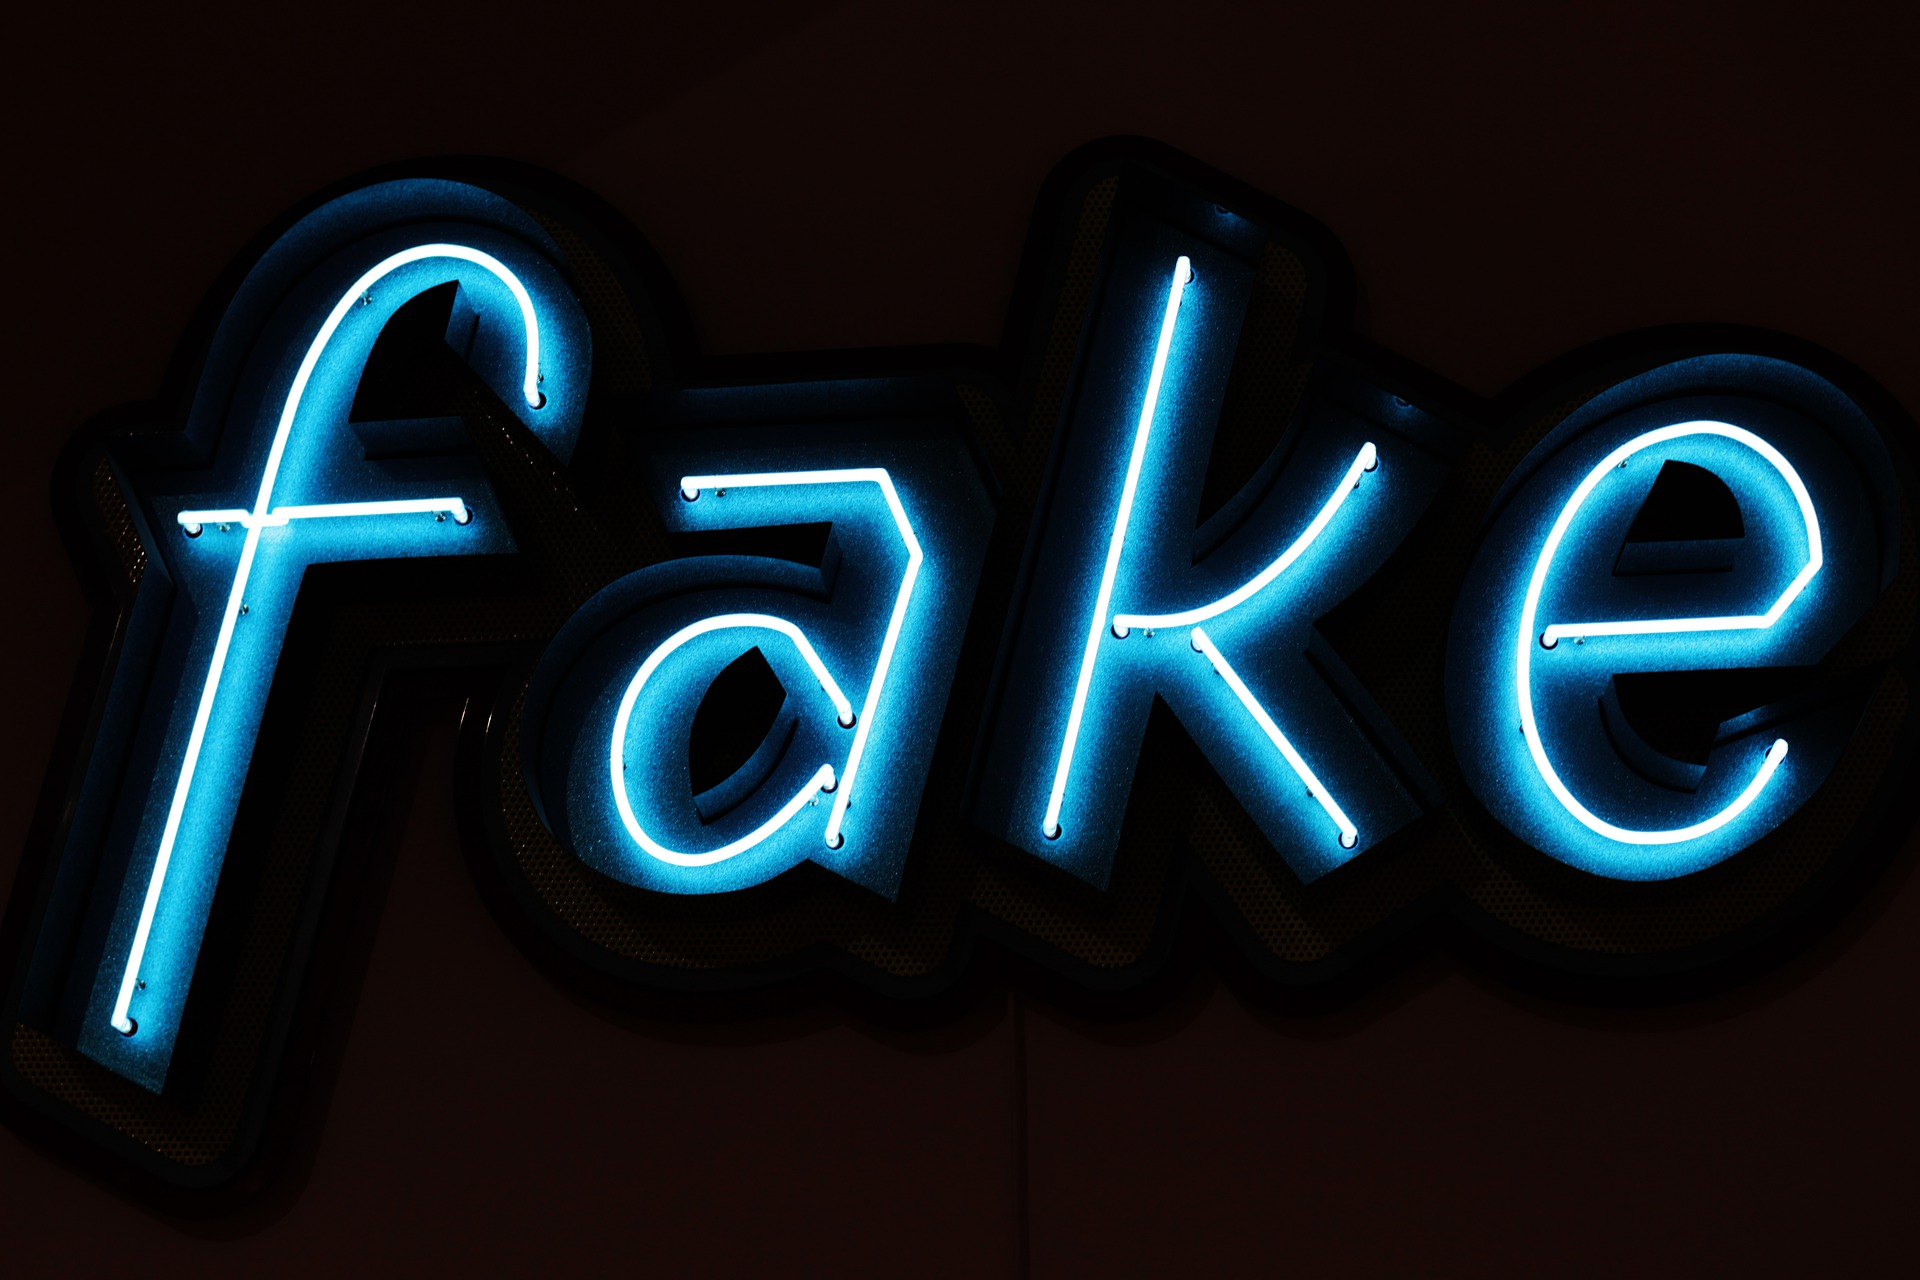 Fake in neon letters